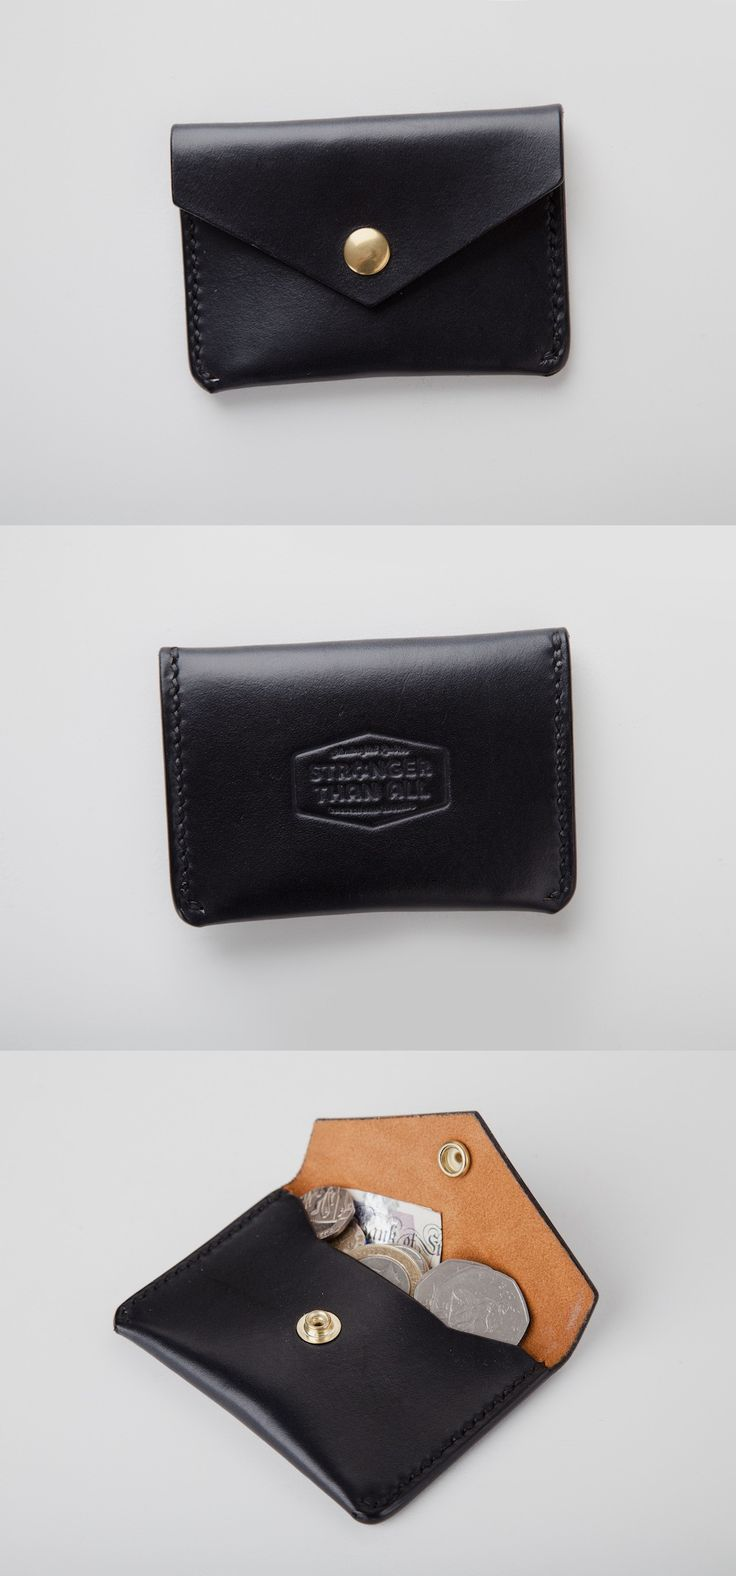 Handmade Black Leather Snap Wallet by Stronger Than All. #everydaycarry #EDC